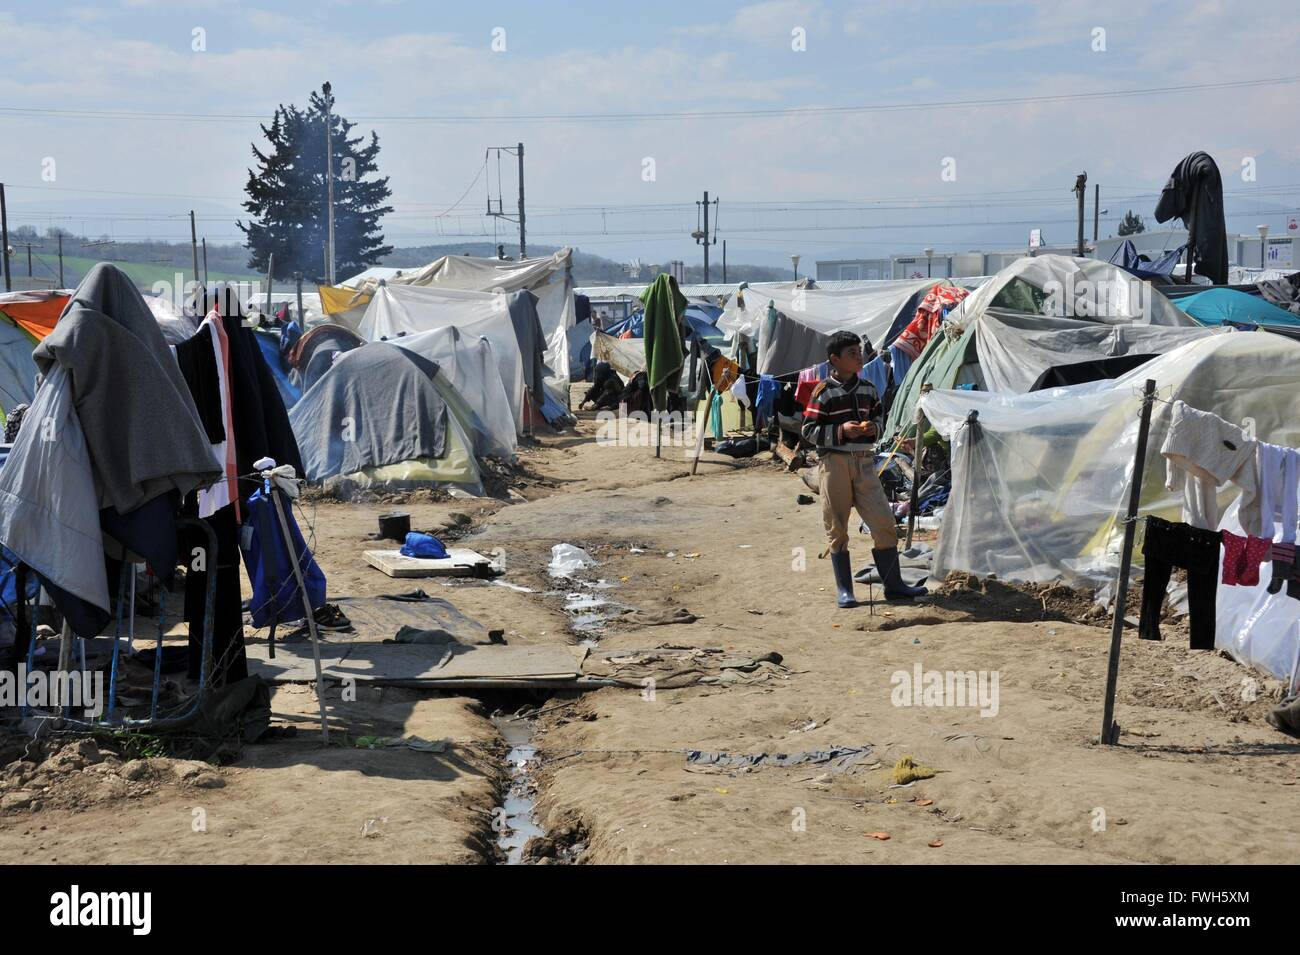 Living in tents. Clotheslines with laundry. A drainage ditch. One child and two veiled women in the background  - Stock Image